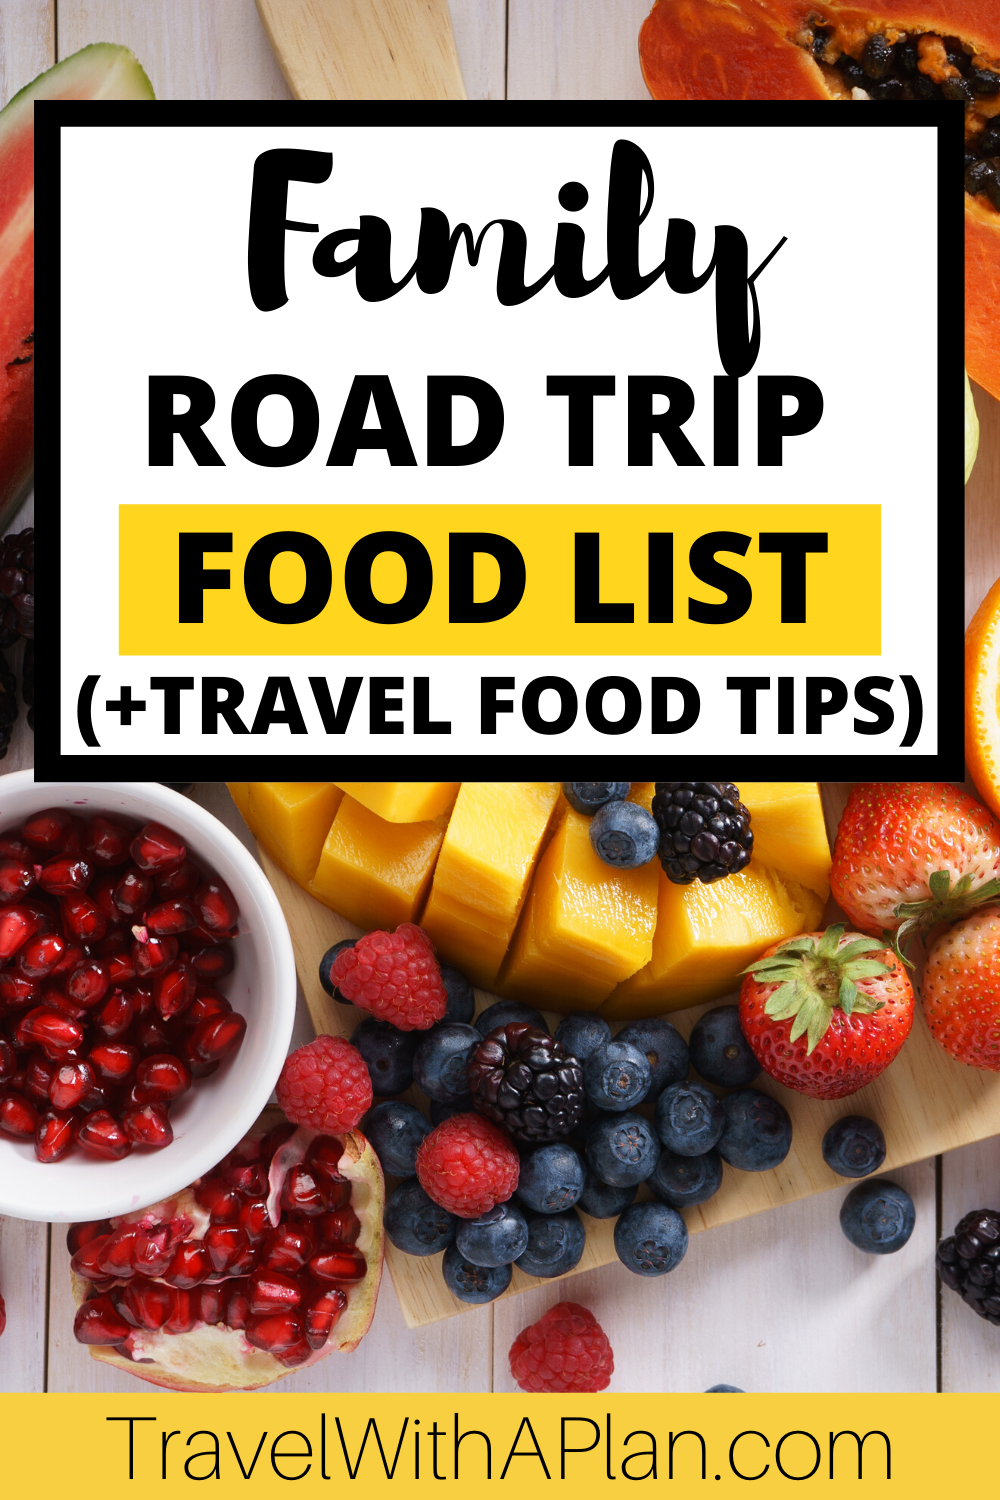 Road tripping is one of our favorite family vacations!  Get our awesome road trip food list that includes ideas for meals and snacks on-the-go and a printable checklist to take to the grocery store!  #roadtripfoodlist #bestroadtripfoods #roadtripsnackideas #toddlerroadtripsnacks #healthyroadtripsnacks #roadtripmeals